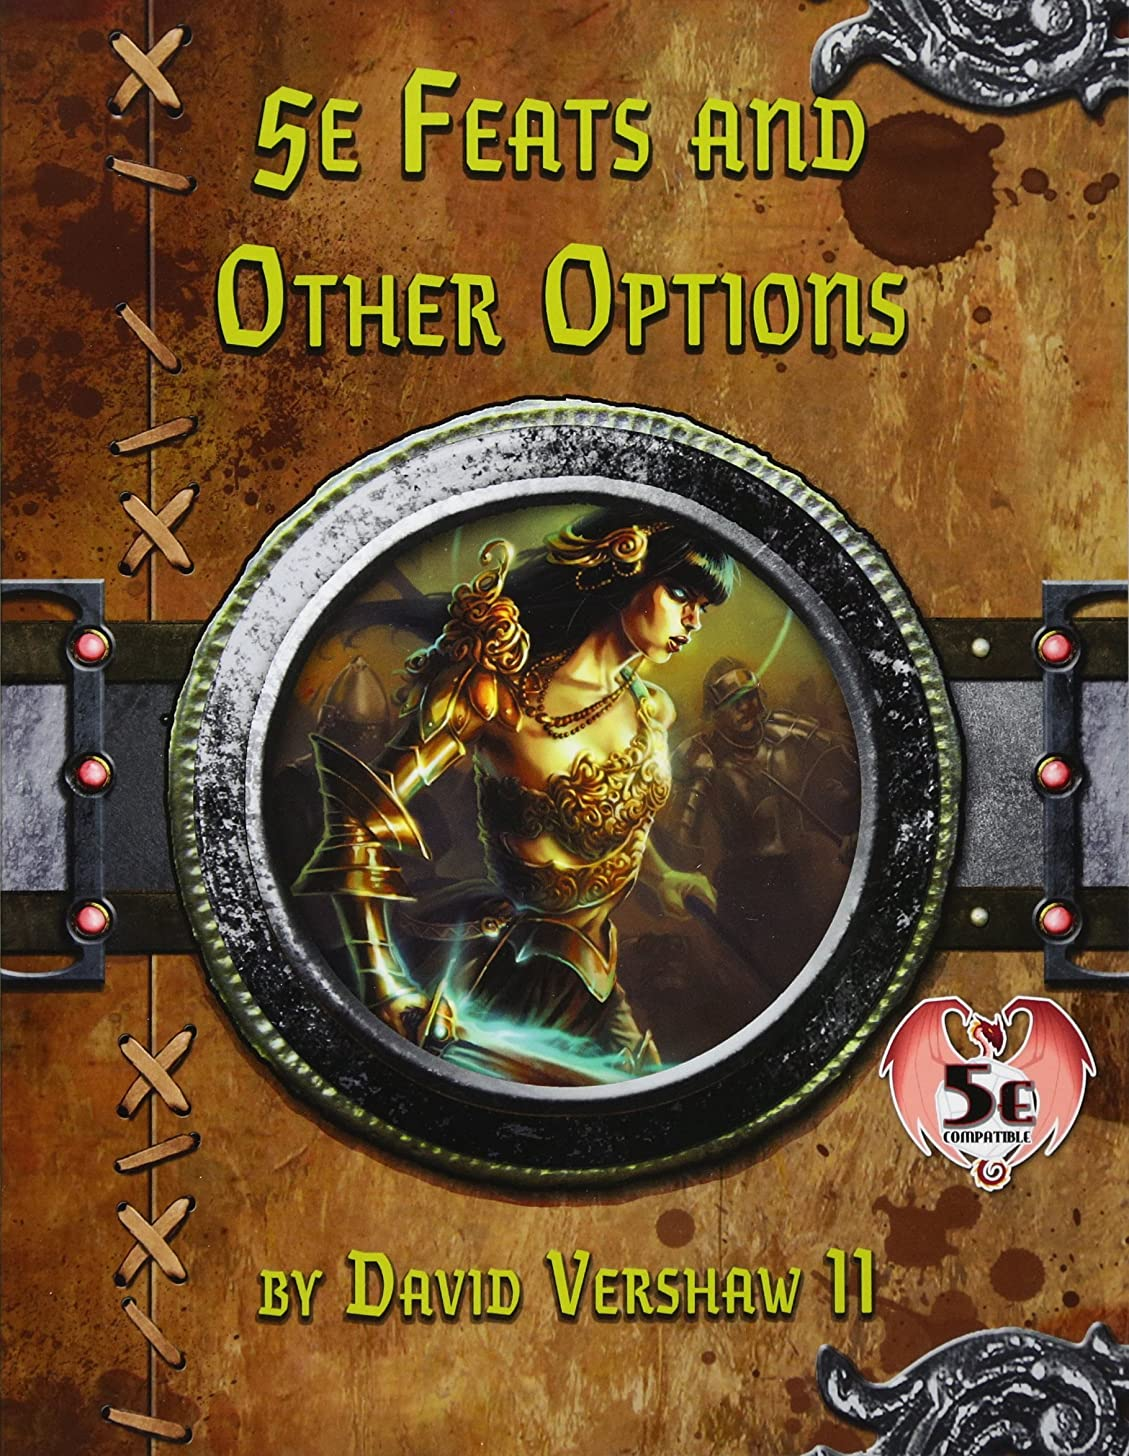 5e Feats and Other Options: Dungeons and Dragons 5e